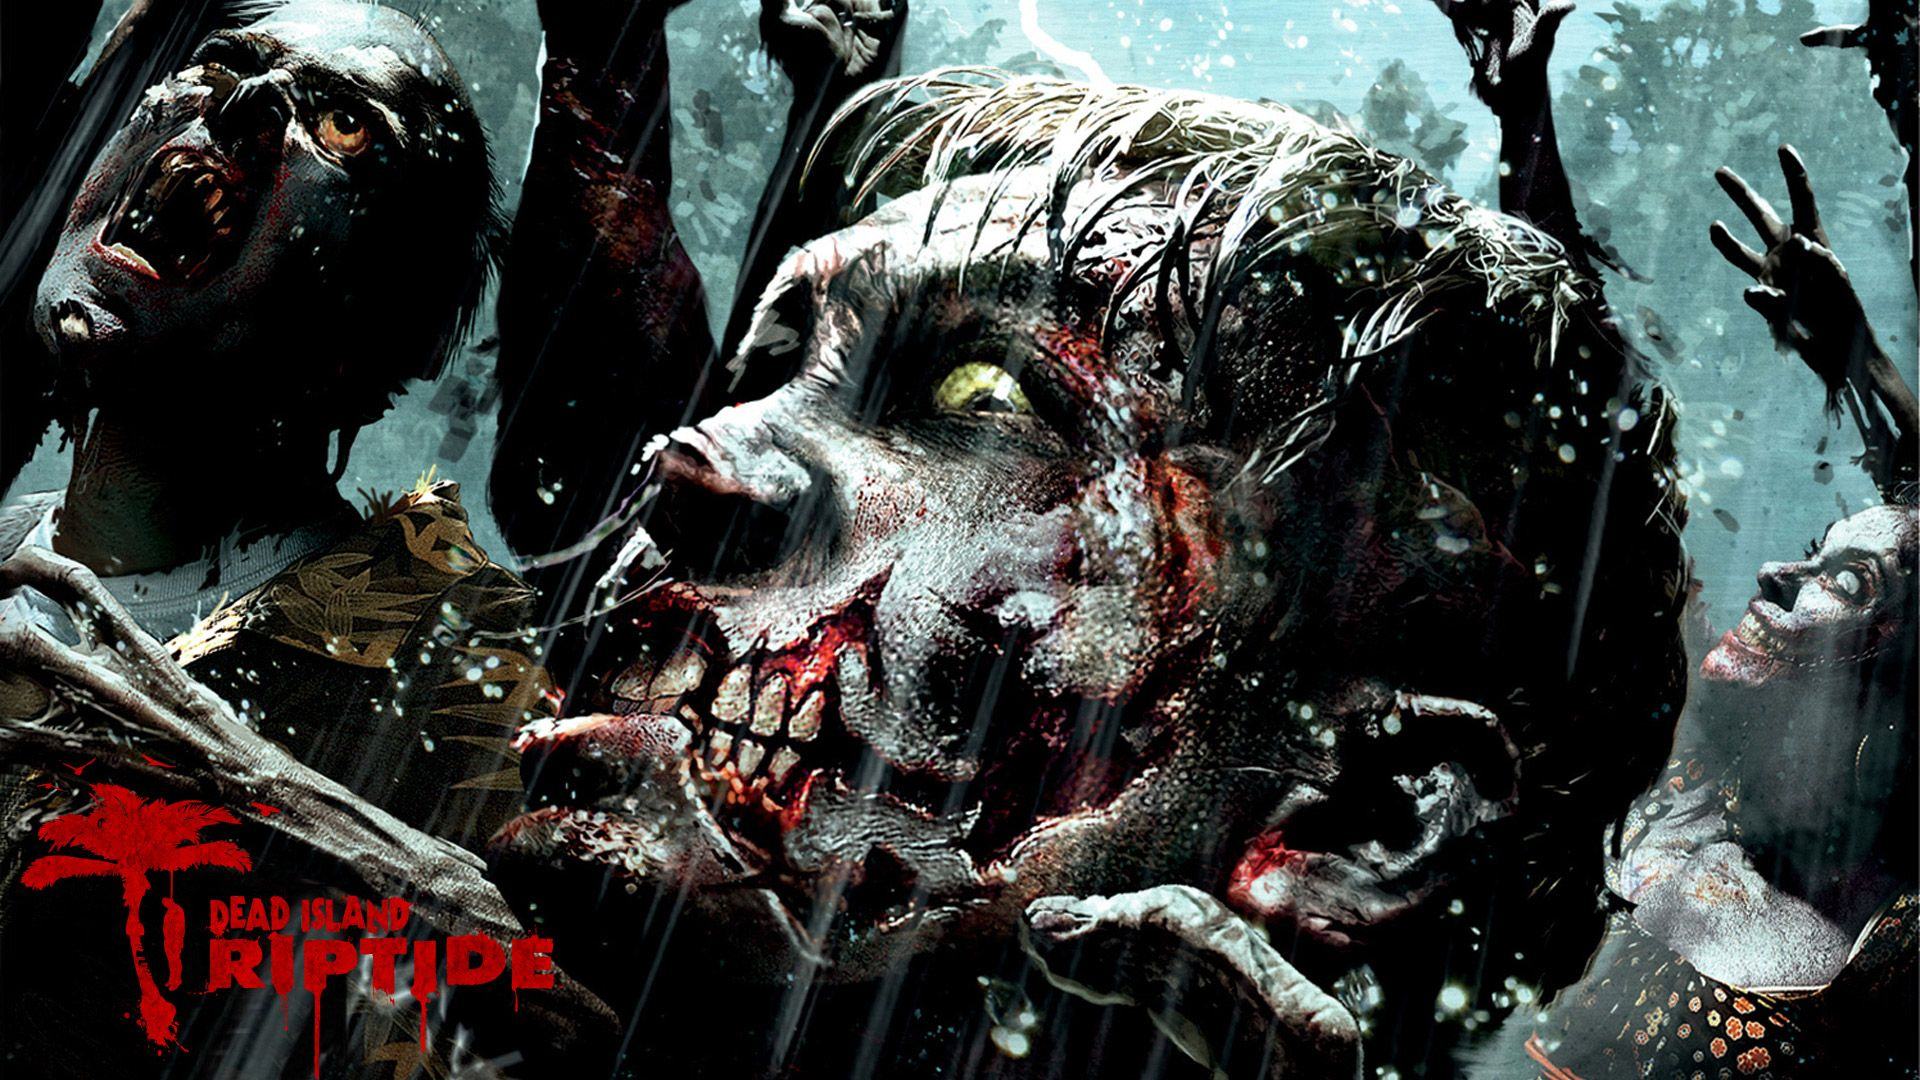 Hd wallpaper zombie - Zombie Wallpapers Hd Wallpaper 1920 1080 Zombies Wallpapers 62 Wallpapers Adorable Wallpapers Desktop Pinterest